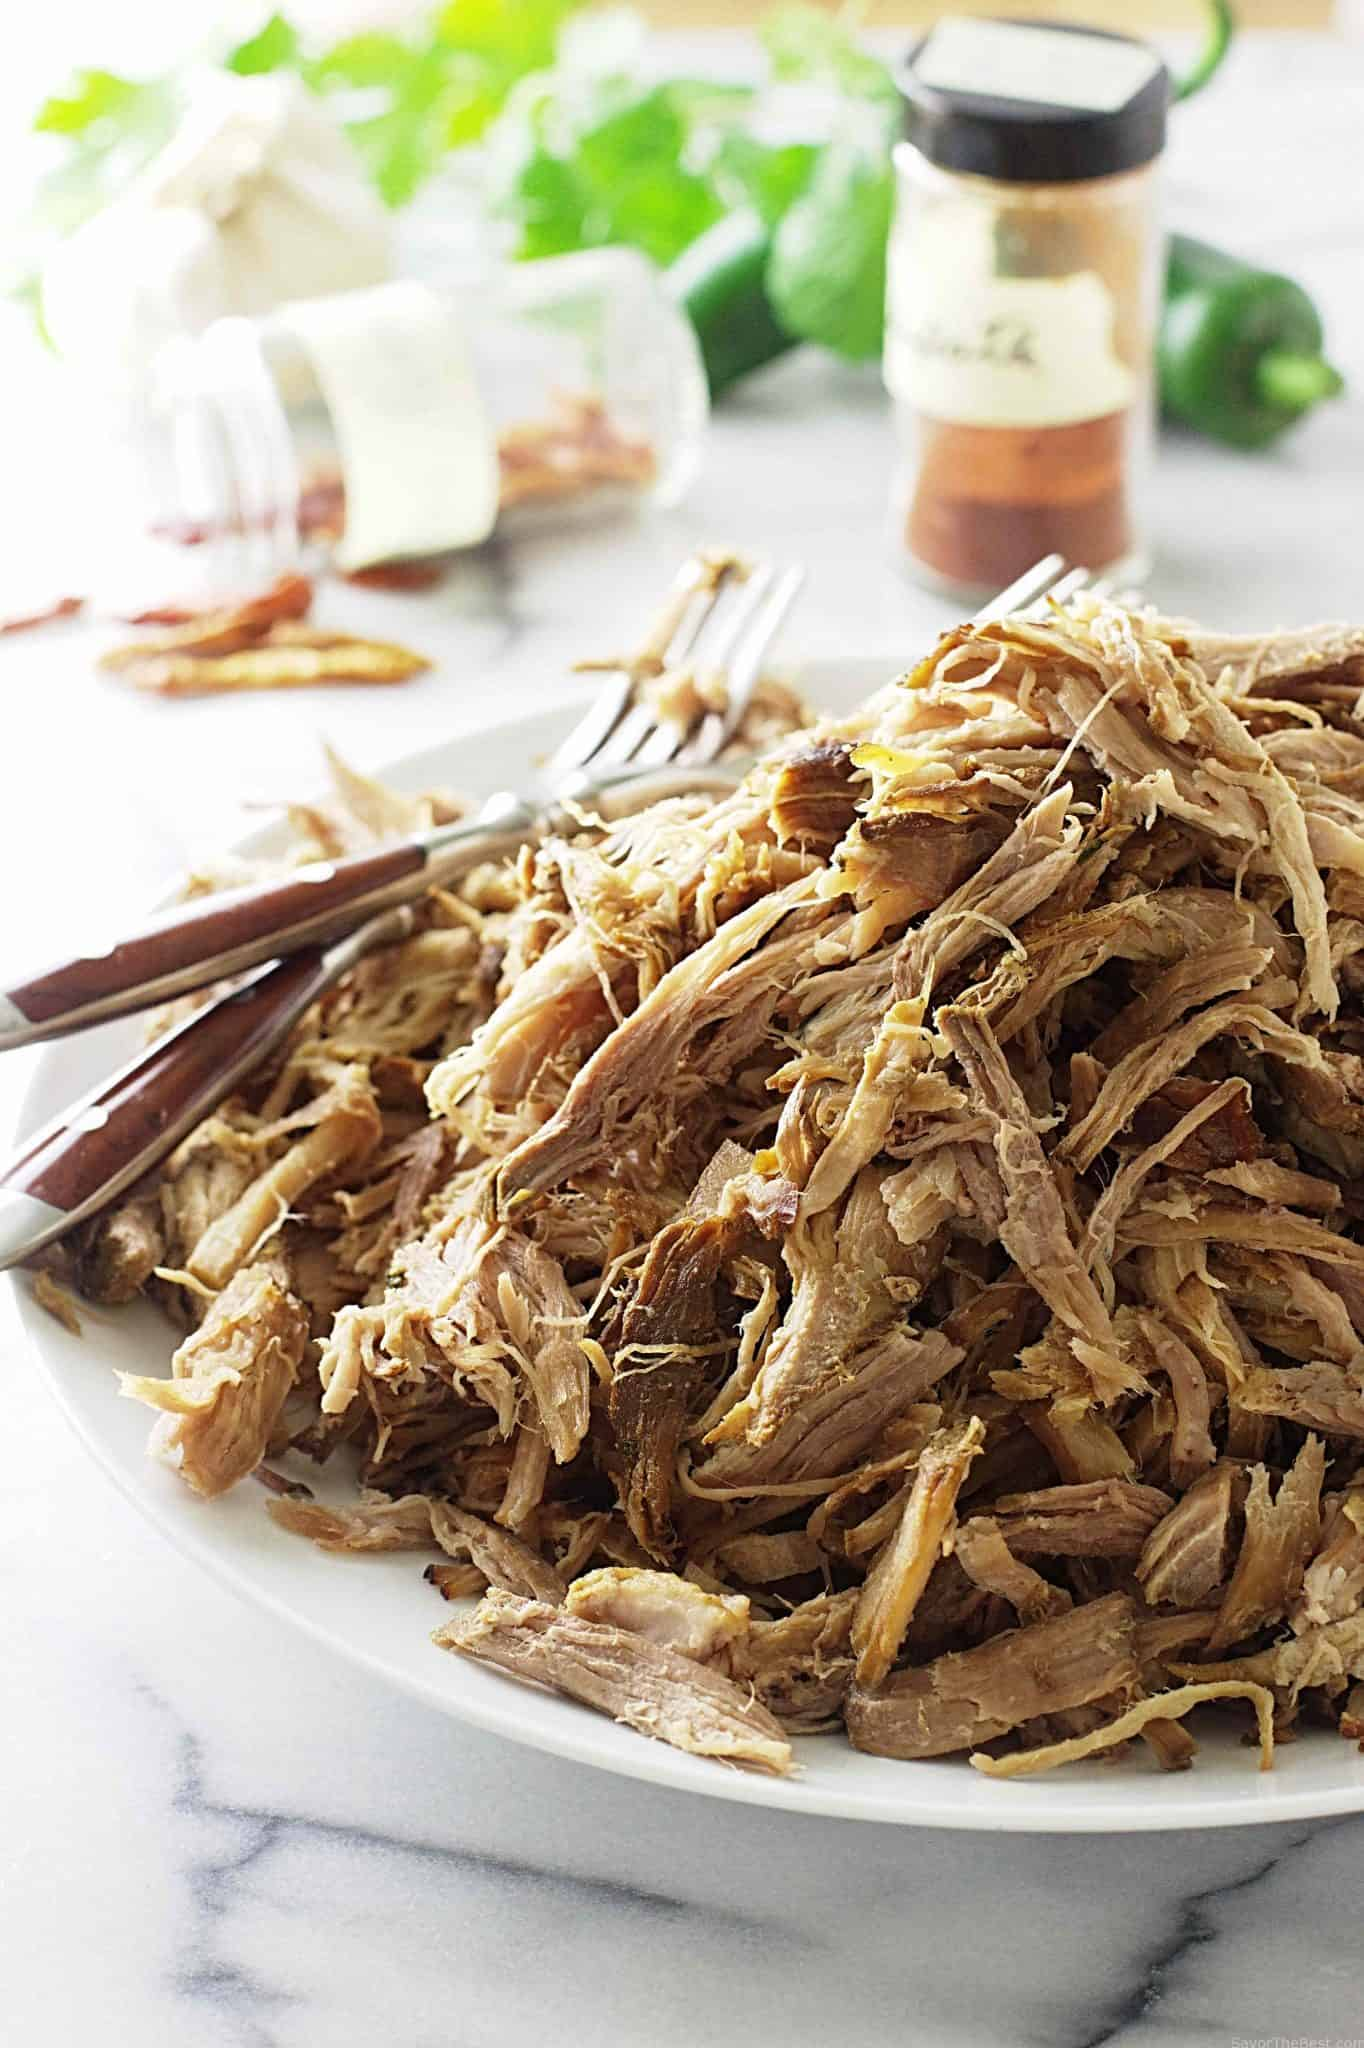 Canned pulled pork recipe